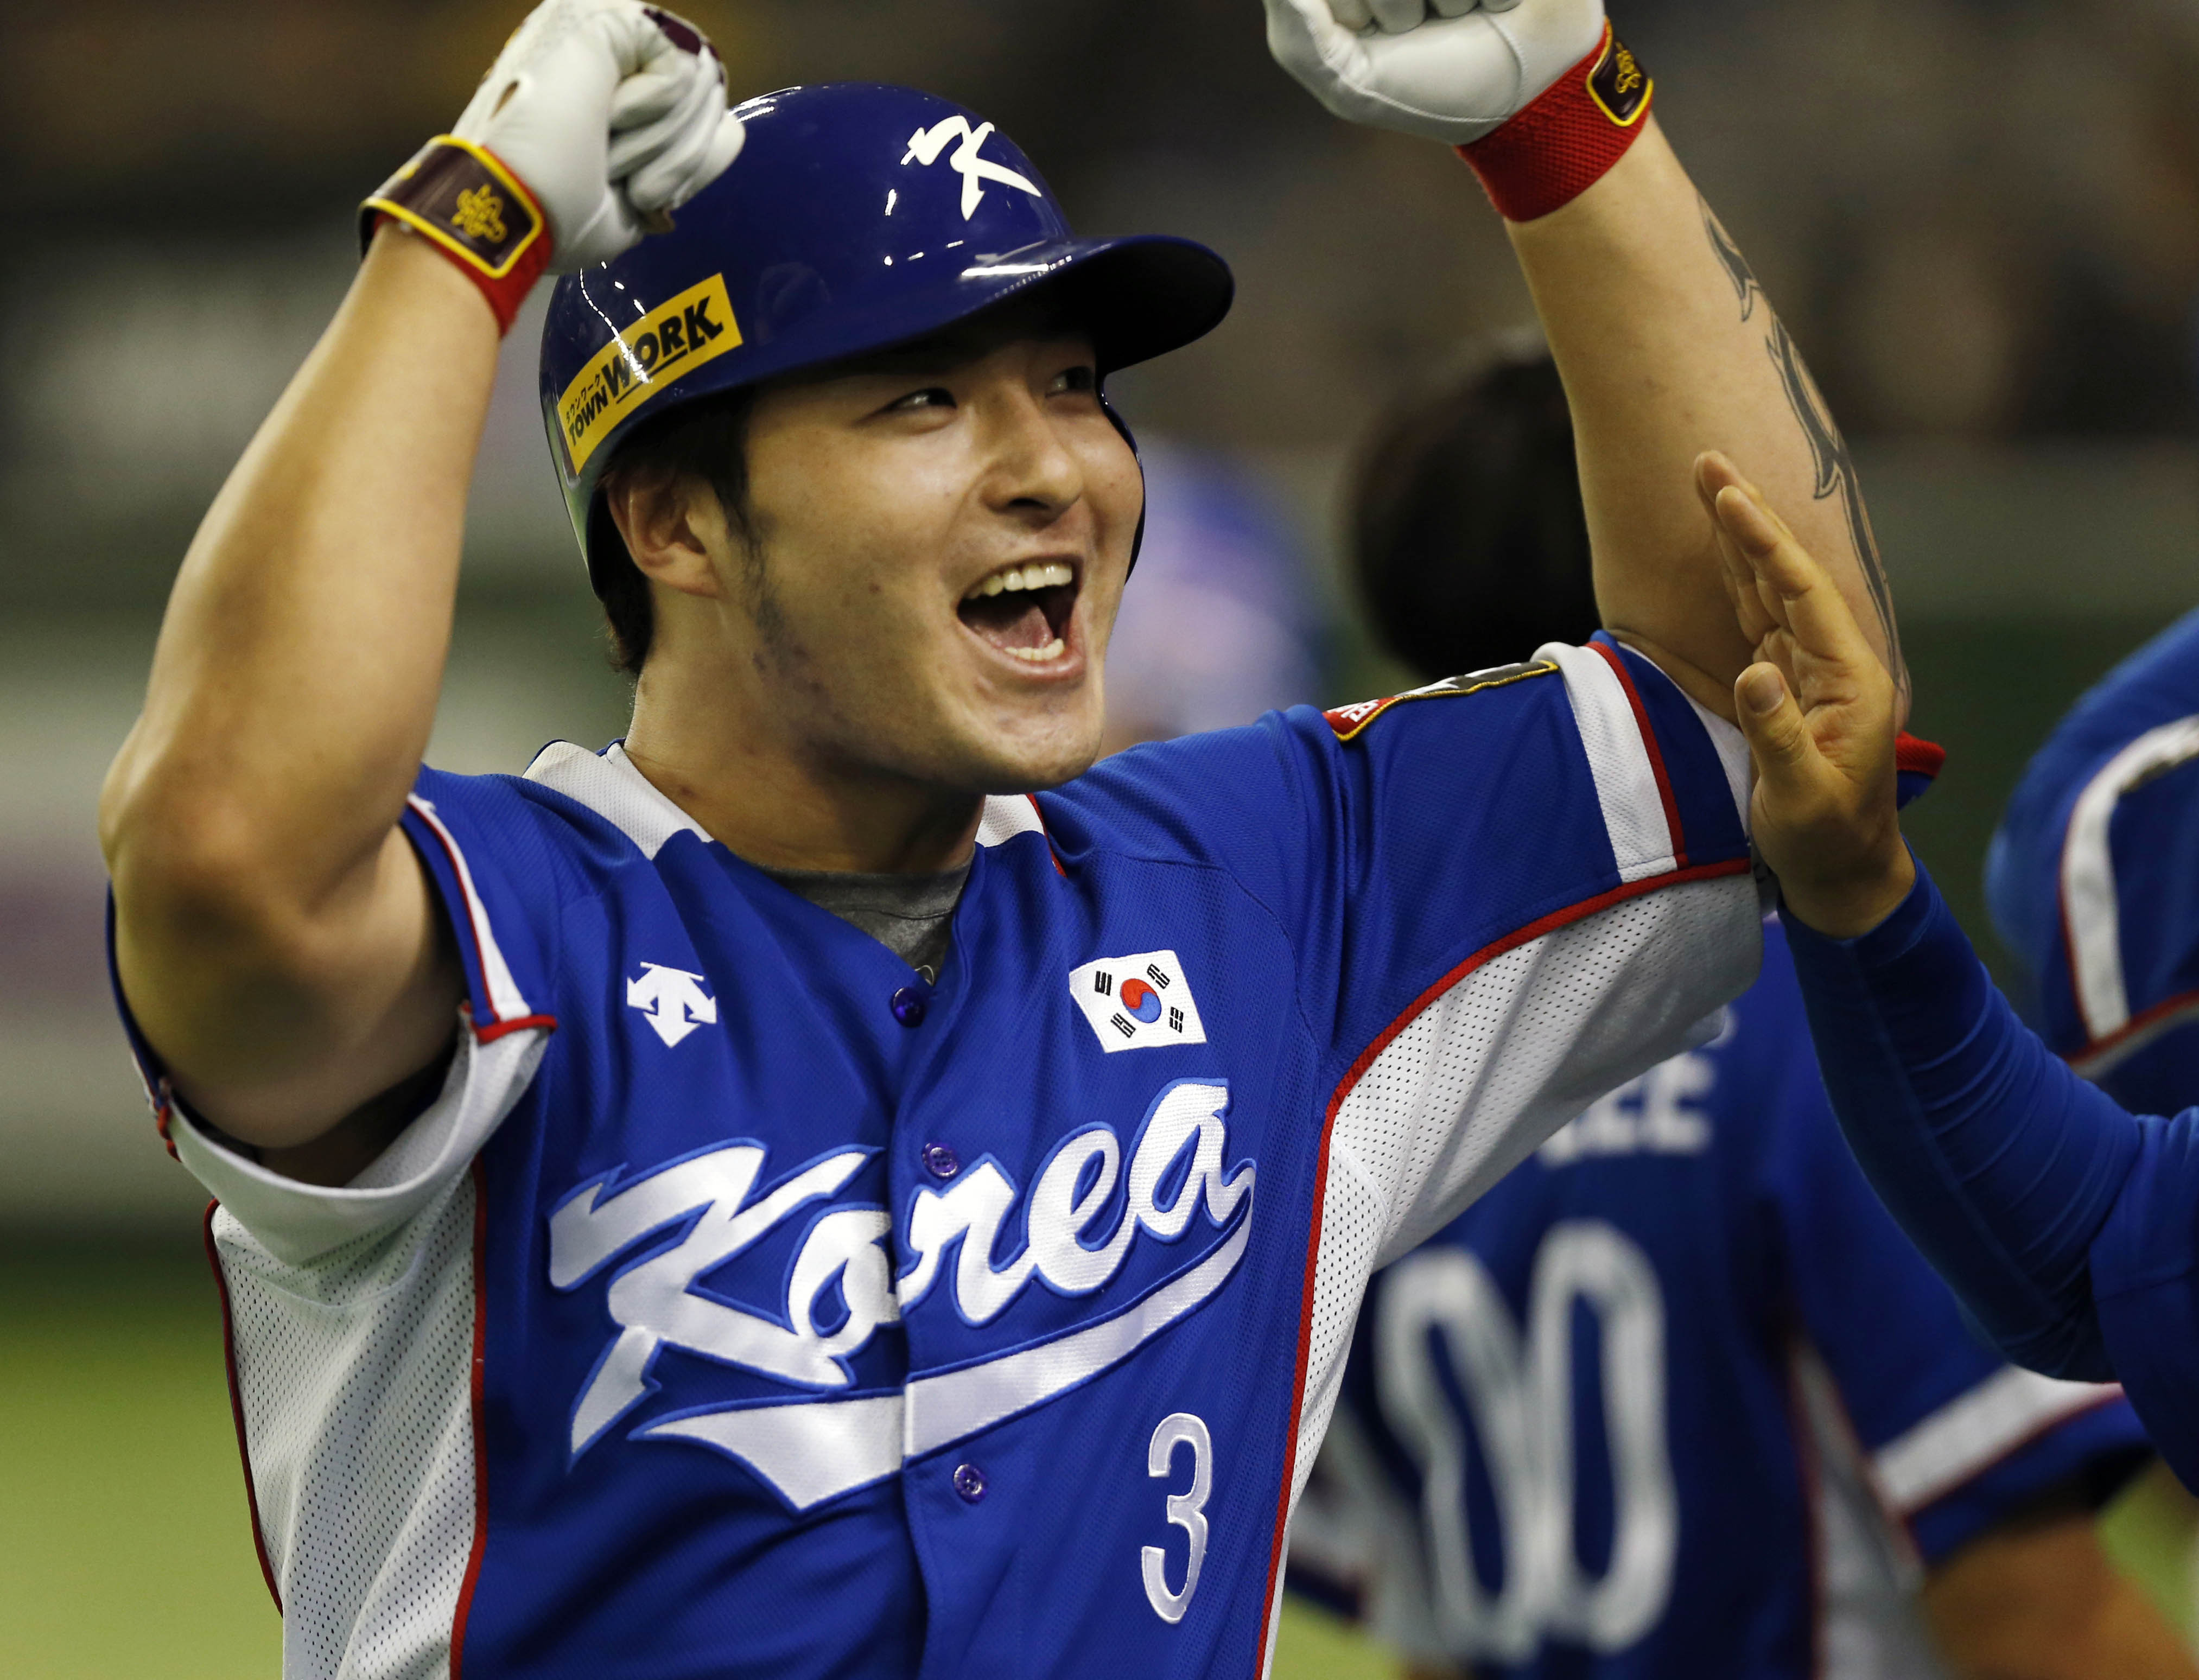 FILE - In this Saturday, Nov. 21, 2015 file photo, South Korea's Park Byung-ho celebrates at the bench after hitting a three-run home run against Team USA in the fourth inning of their final game at the Premier12 world baseball tournament at Tokyo Dome in